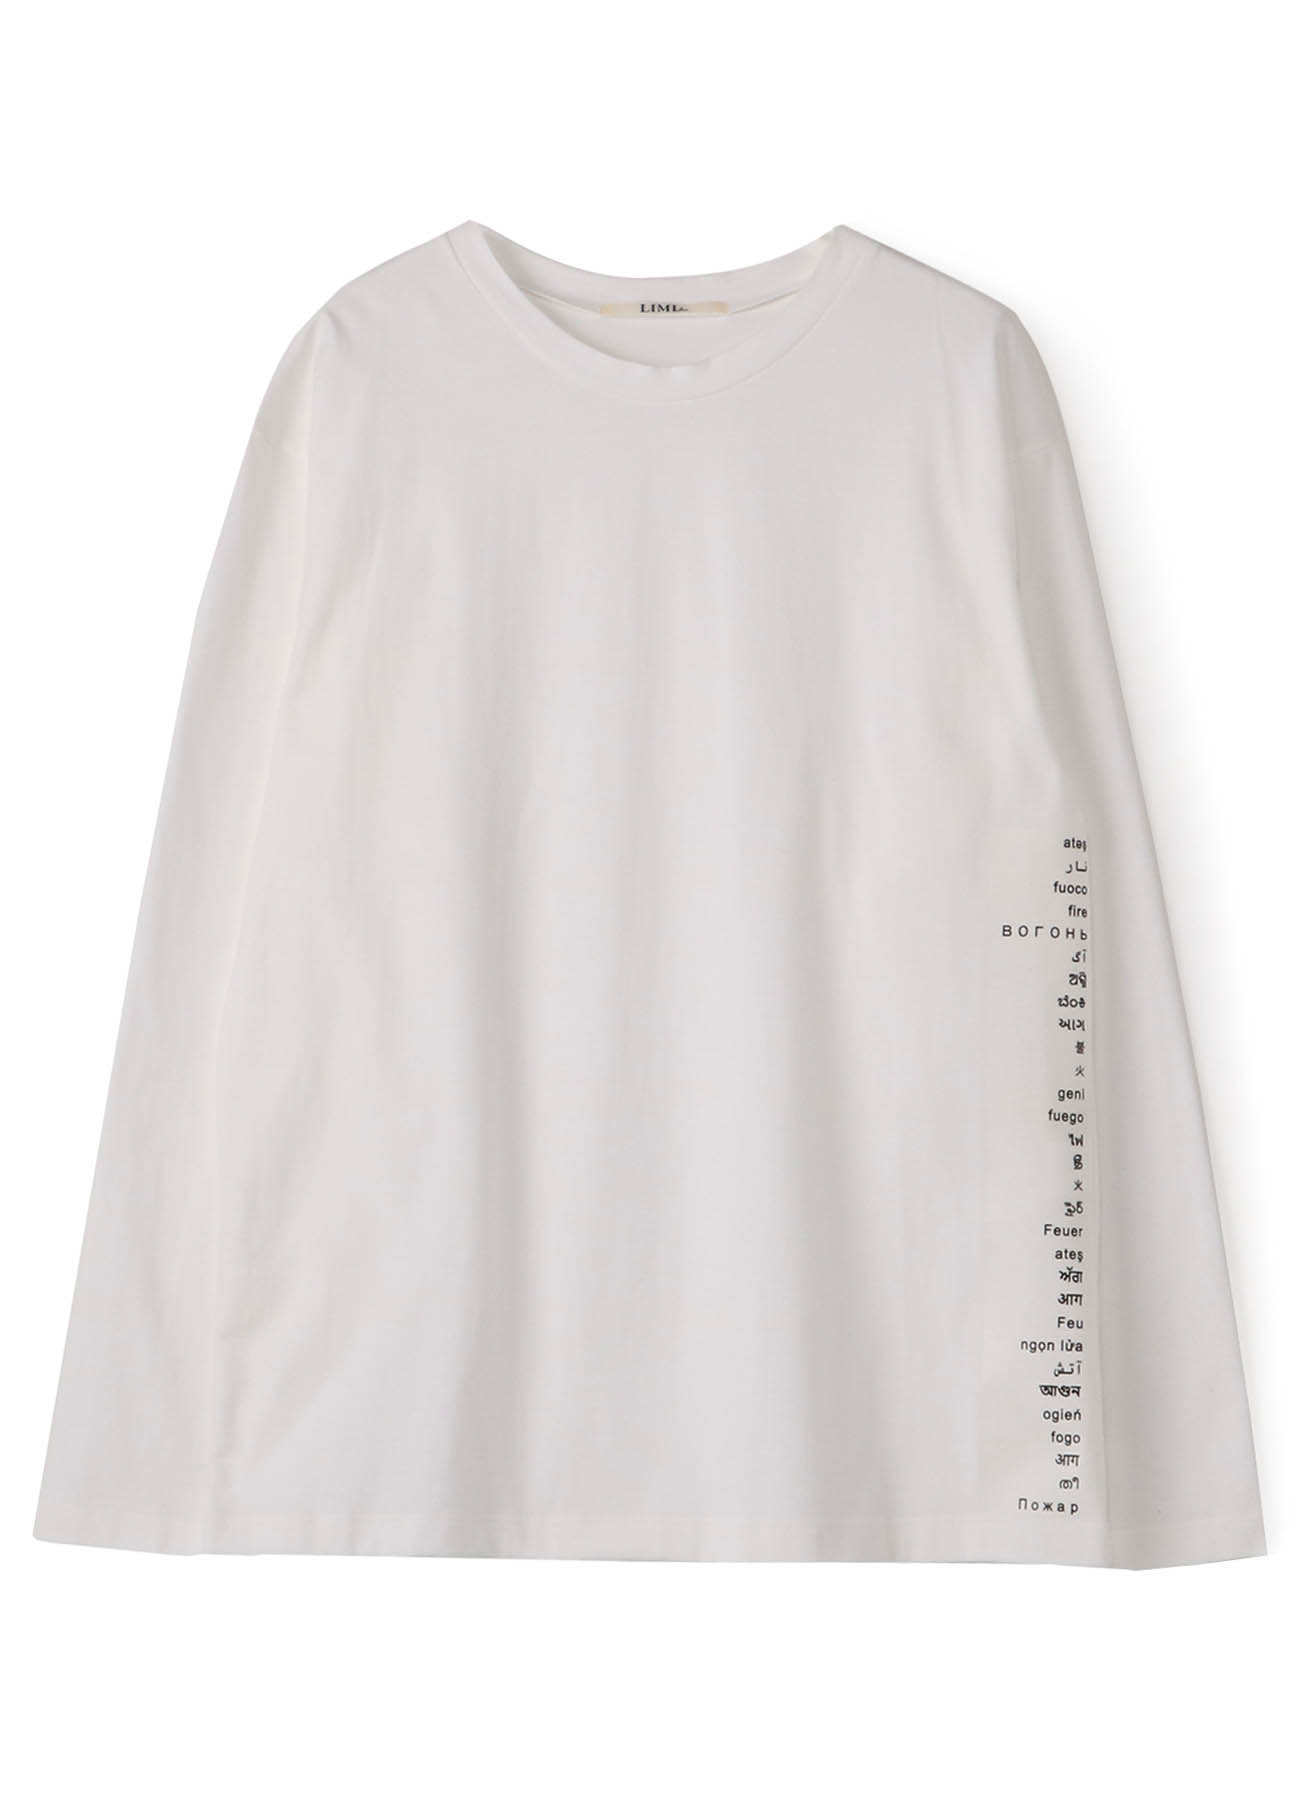 Words Feu Print 1 Over Size Long T